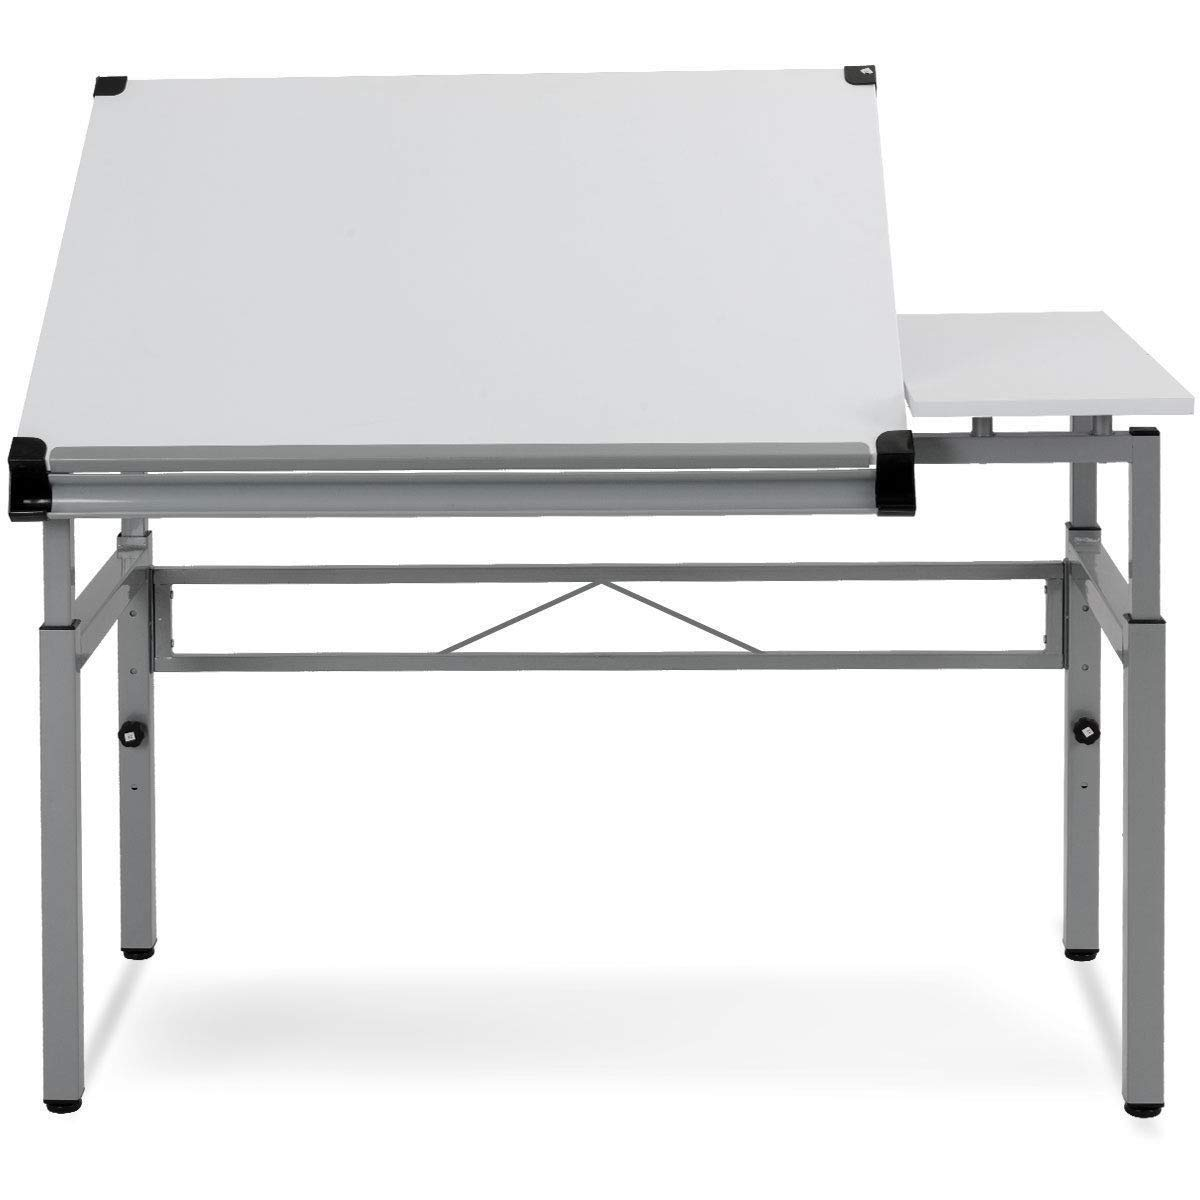 Seleq Adjustable Steel Frame Drawing Desk Drafting Table by Seleq (Image #5)